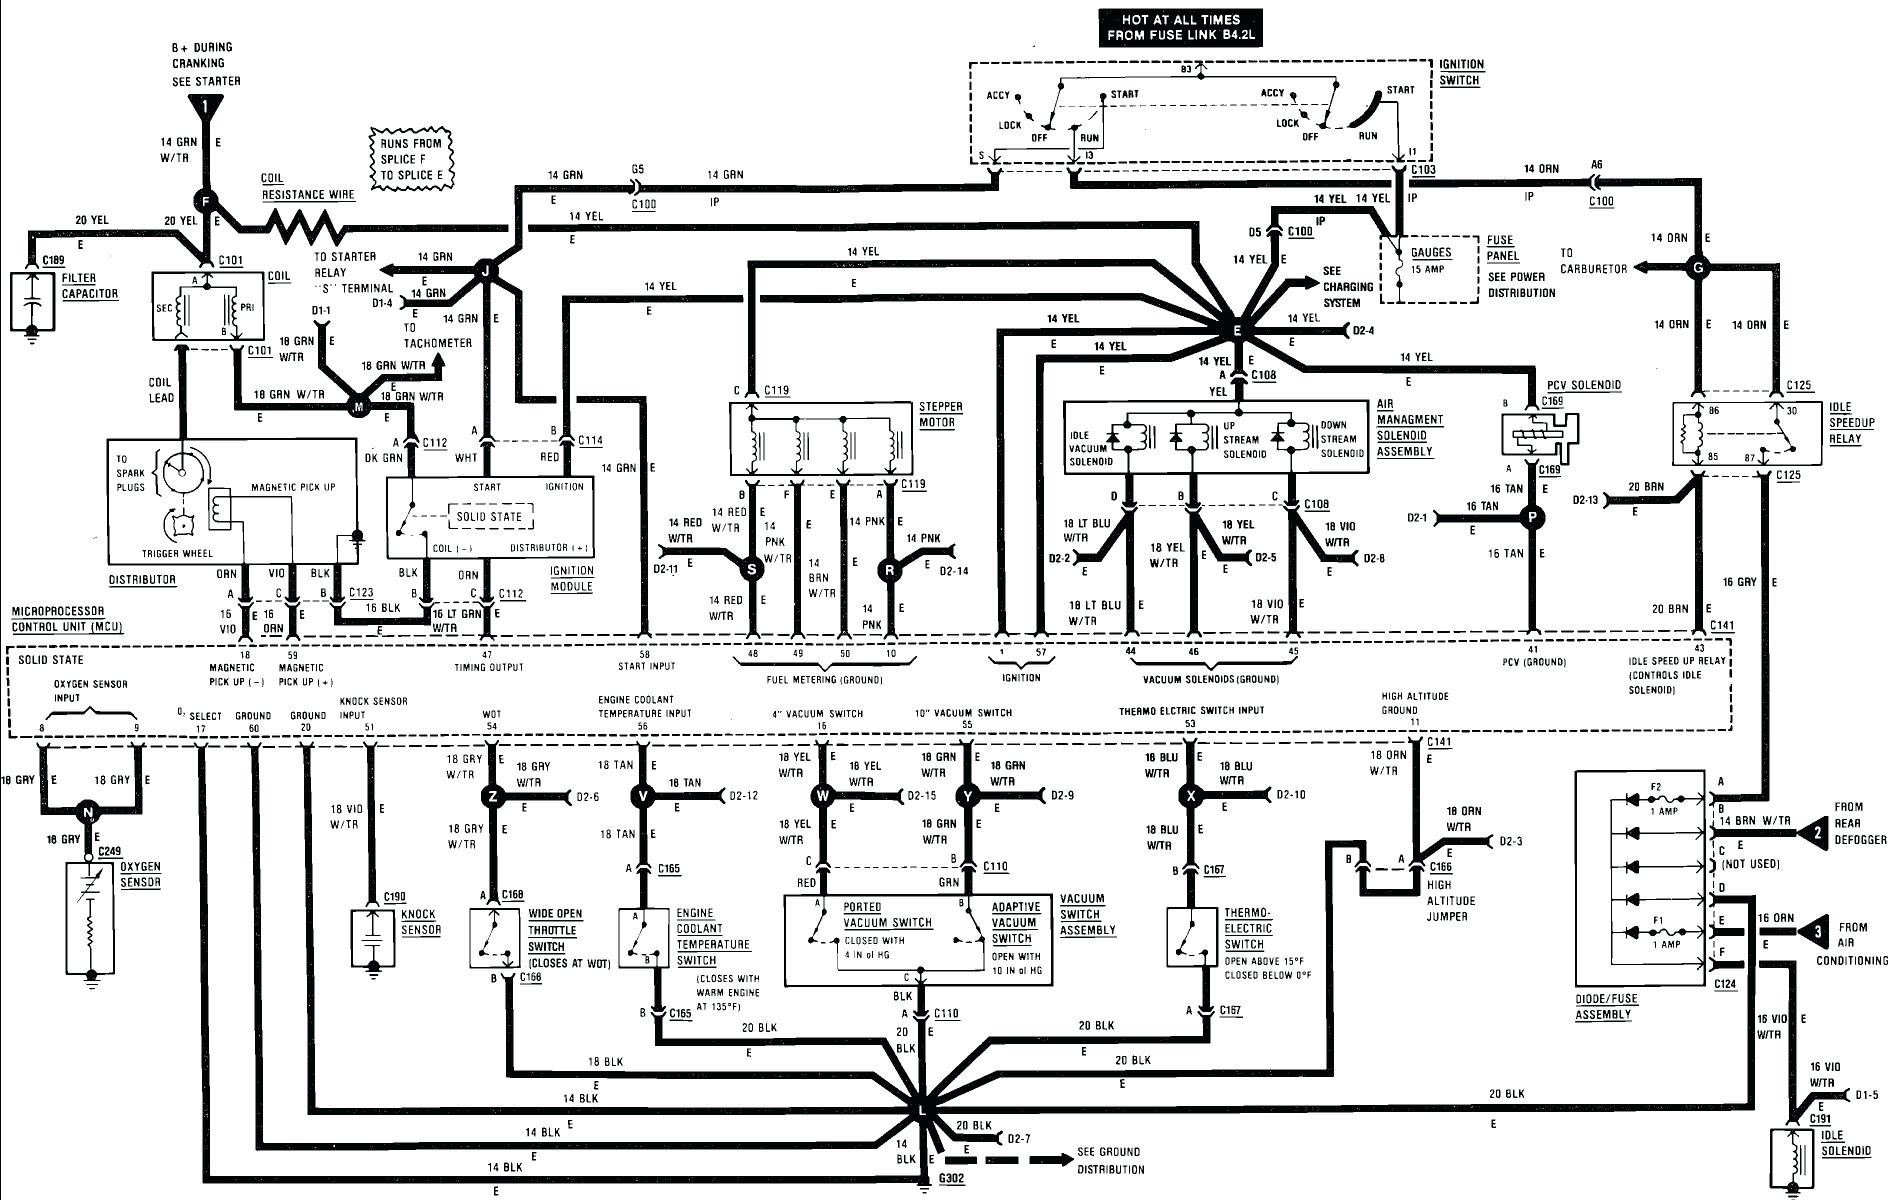 [TBQL_4184]  DIAGRAM] 2004 Jeep Liberty Stereo Wiring Diagram FULL Version HD Quality Wiring  Diagram - ULTRADIAGRAM.TREIZEDESIGN.FR | 2004 Jeep Liberty Wiring Diagram |  | ultradiagram.treizedesign.fr